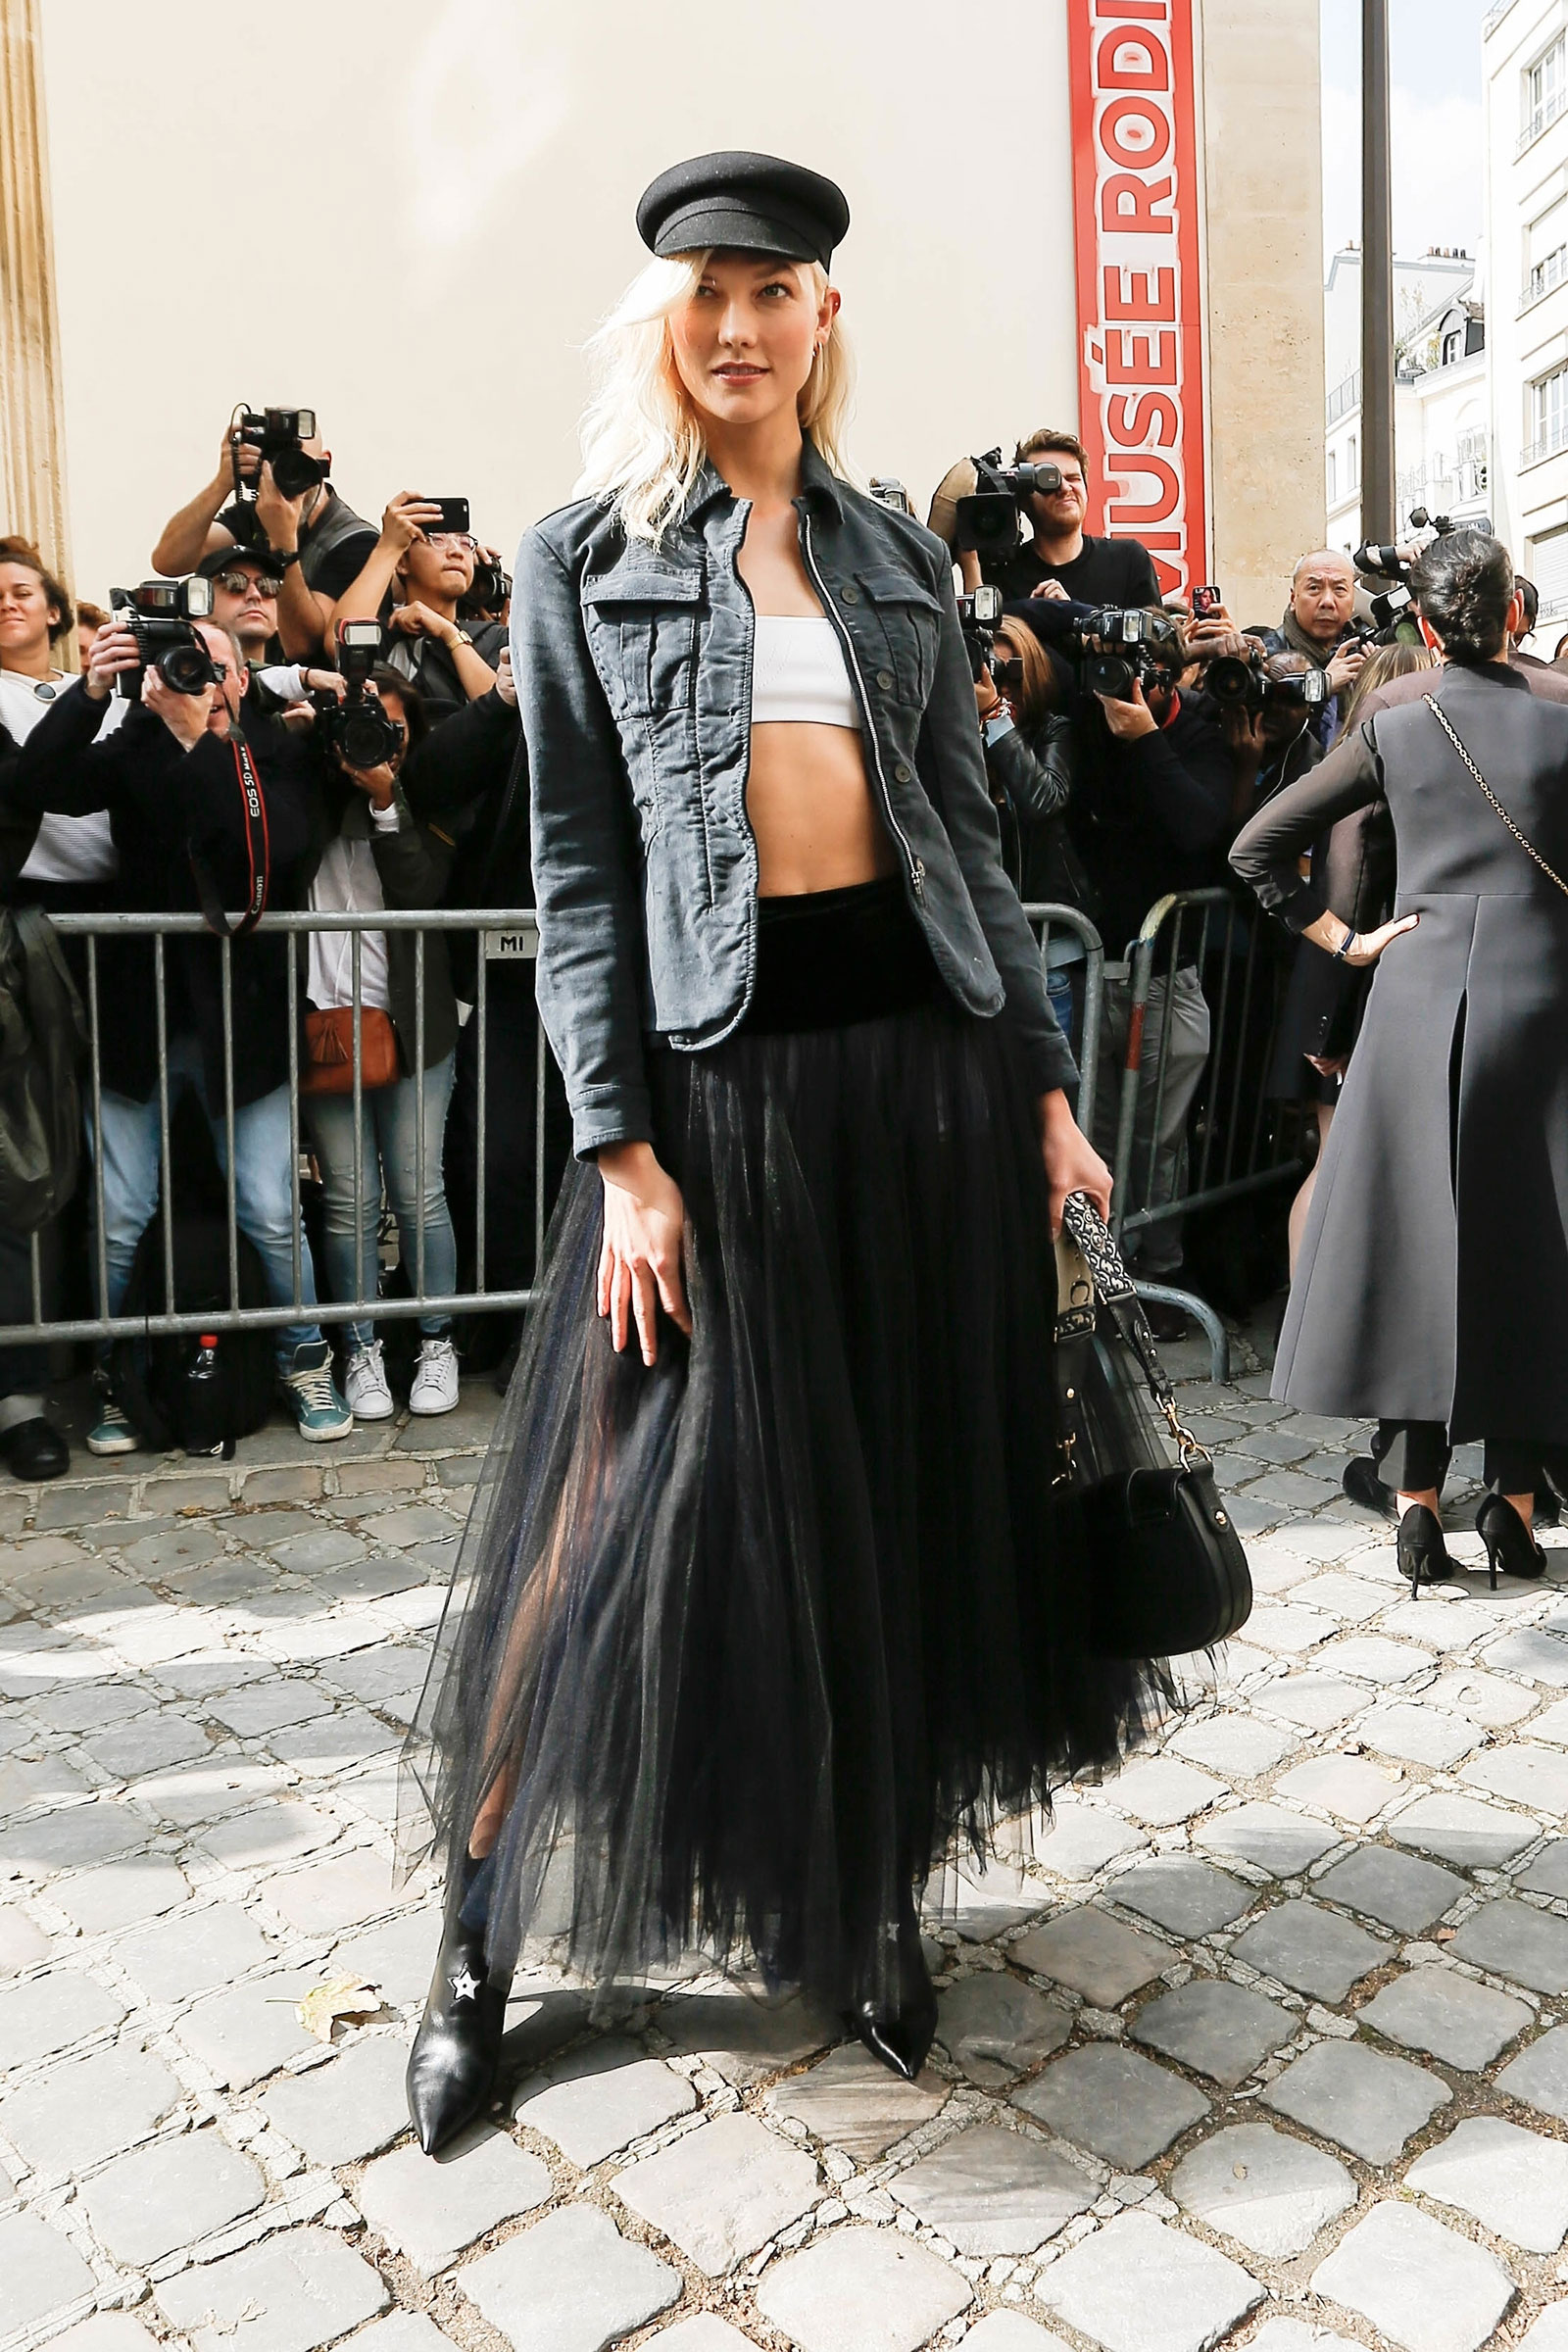 Karlie Kloss arrives at the Dior Paris fashion week show in a tulle skirt and zipper jacket.